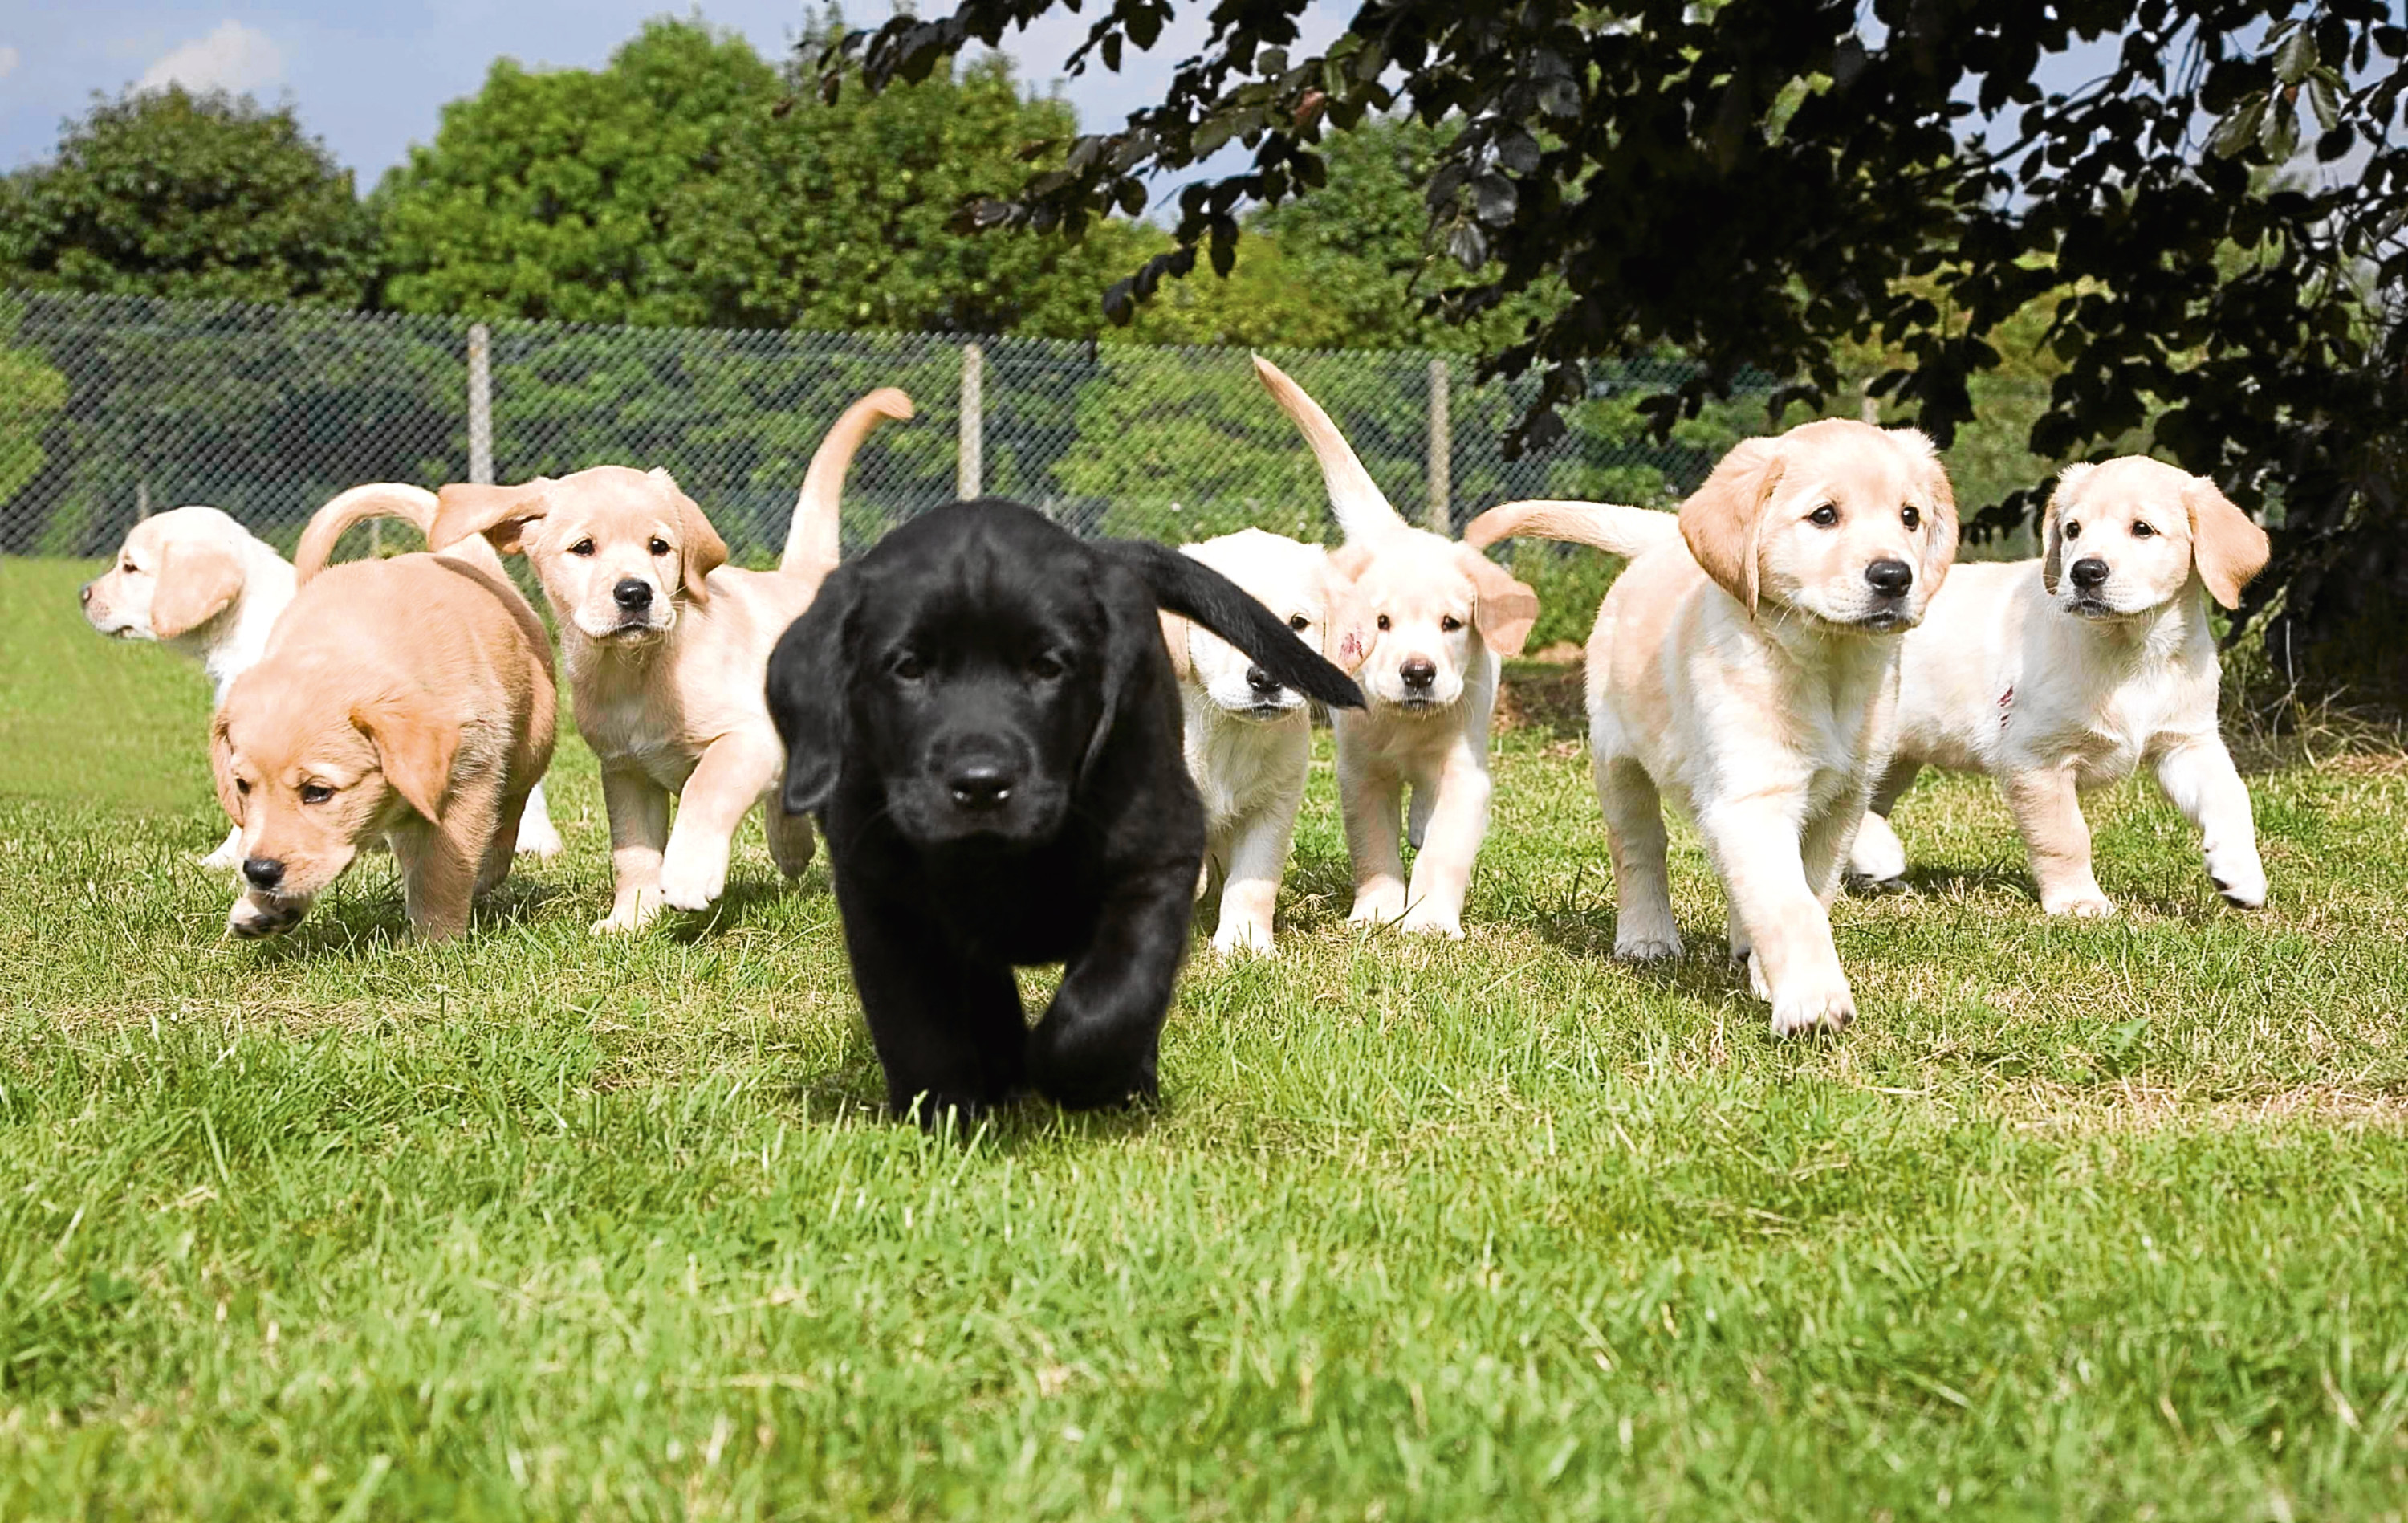 The charity Guide Dogs has launched an appeal to find volunteers in the Dundee area who can give a temporary home to a guide dog puppy or guide dog in training.